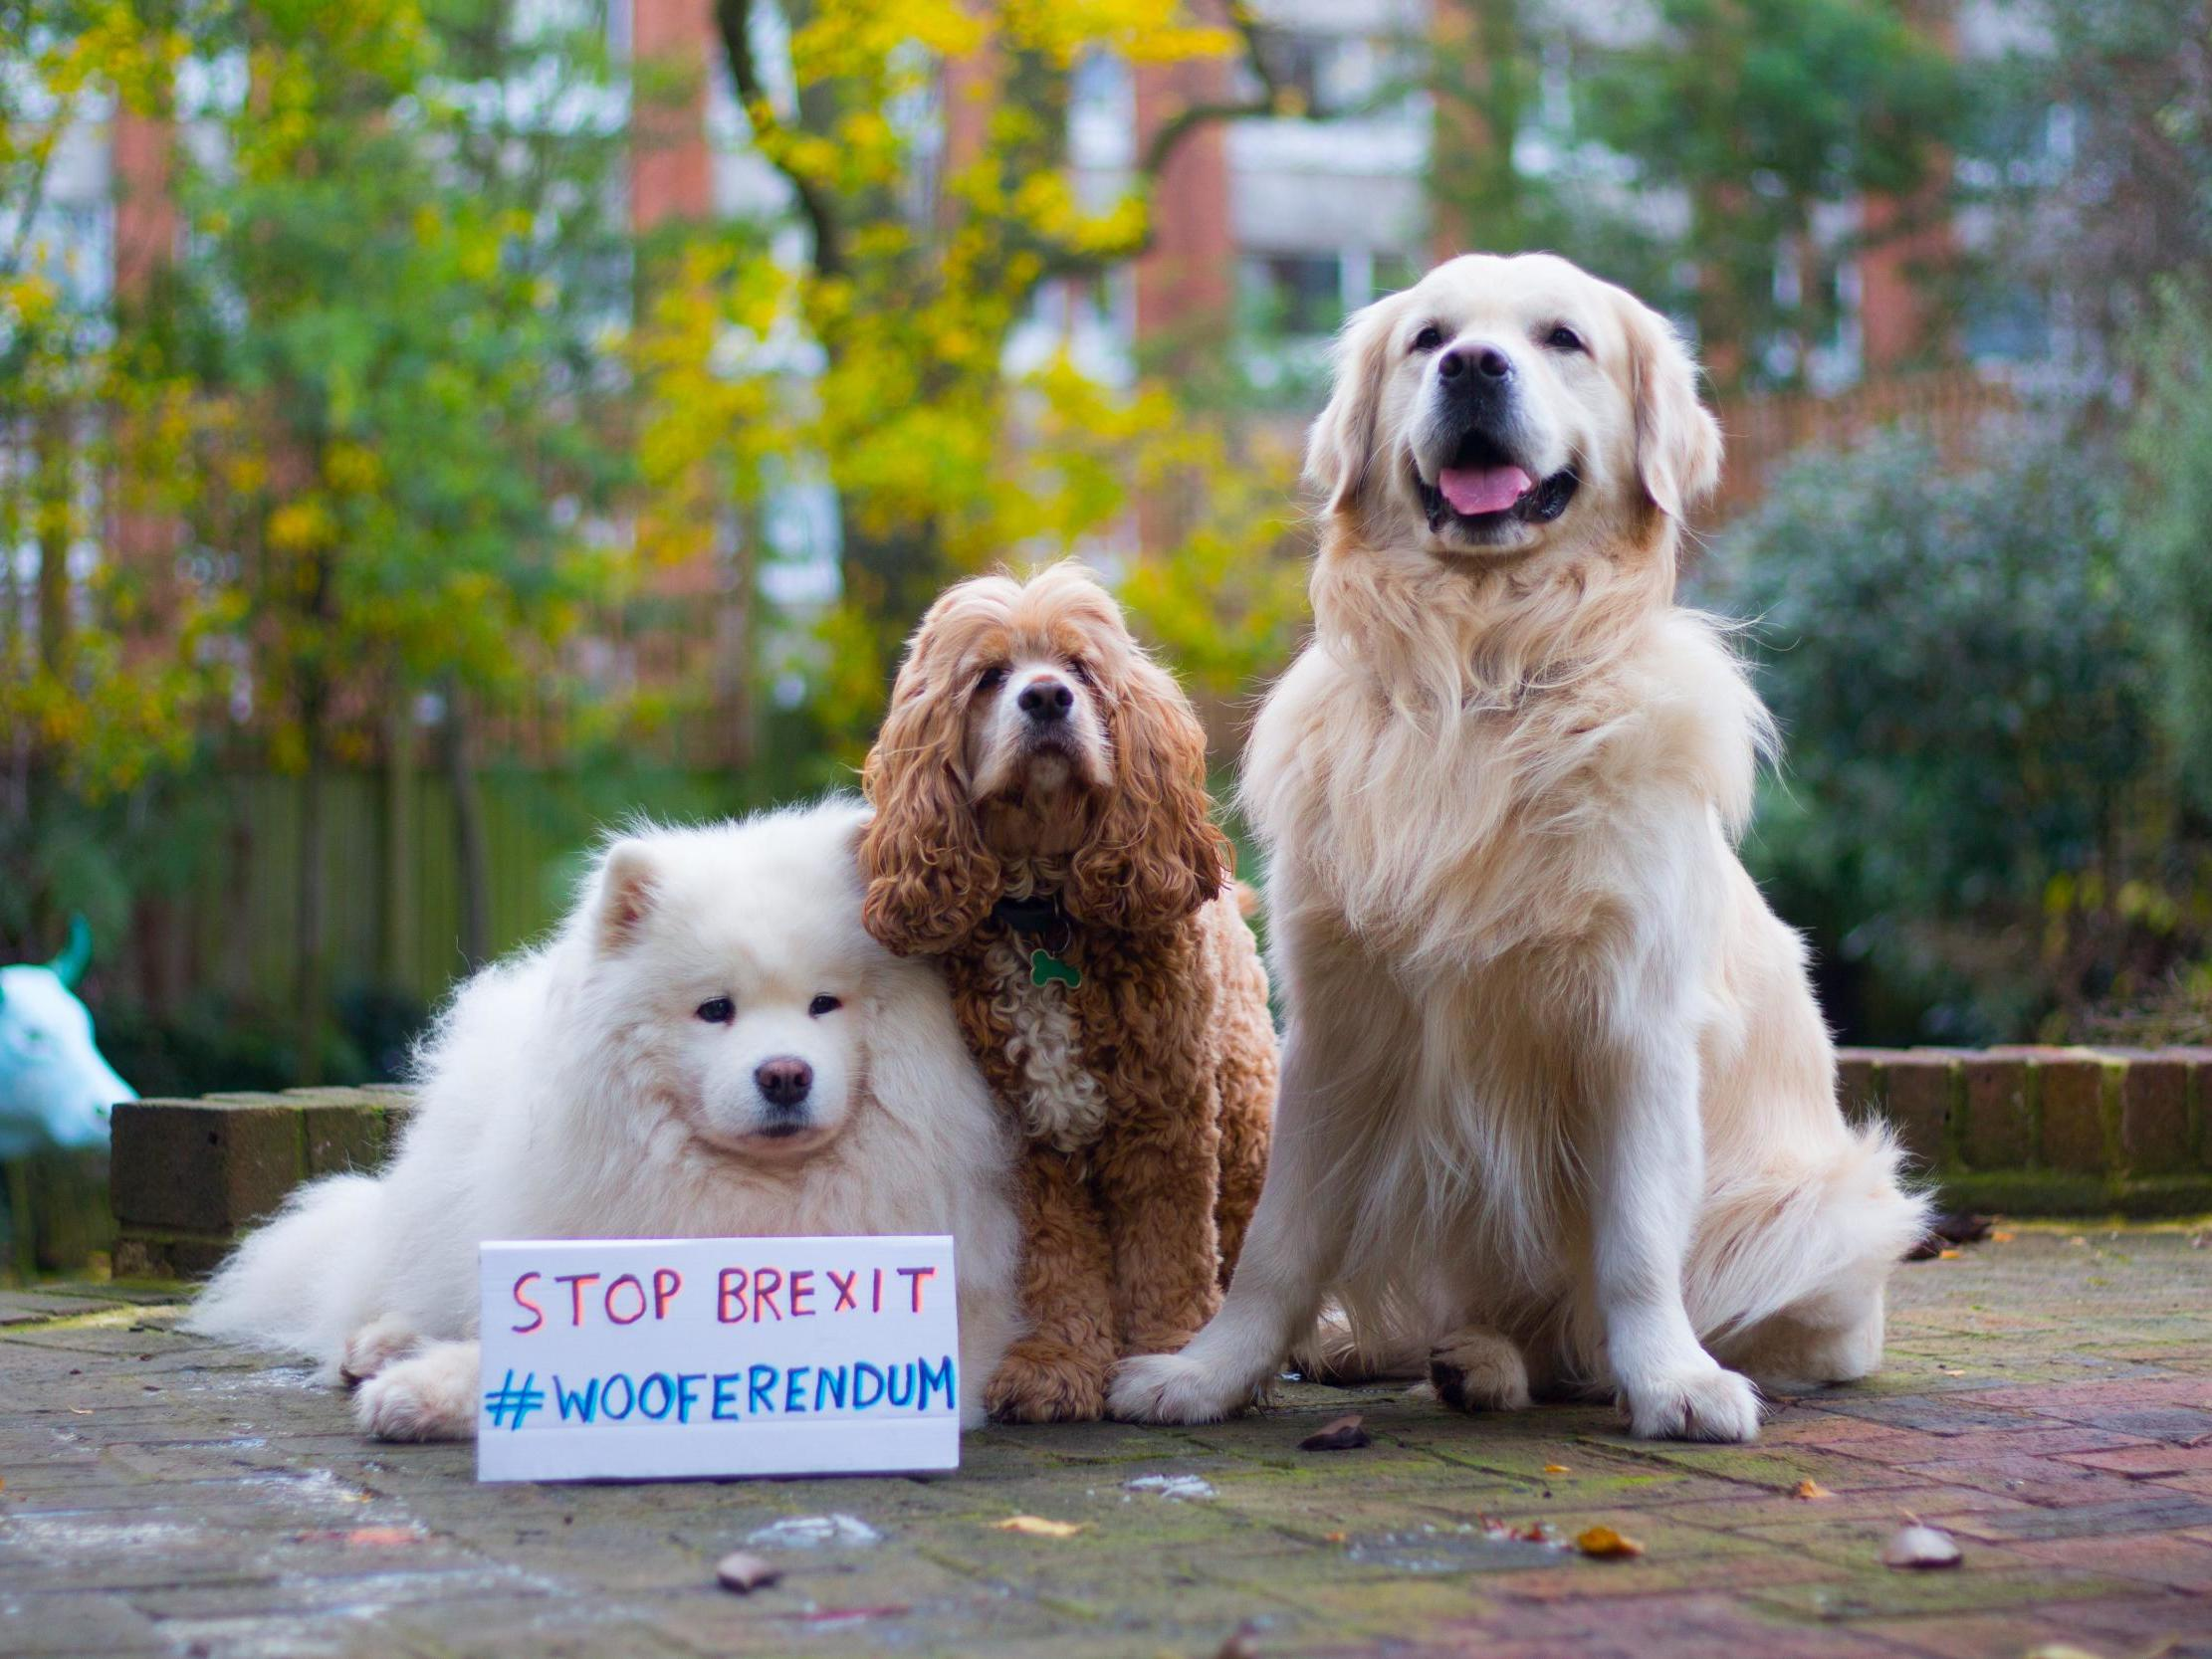 'Dogs against Brexit' to march on Parliament to demand new EU referendum